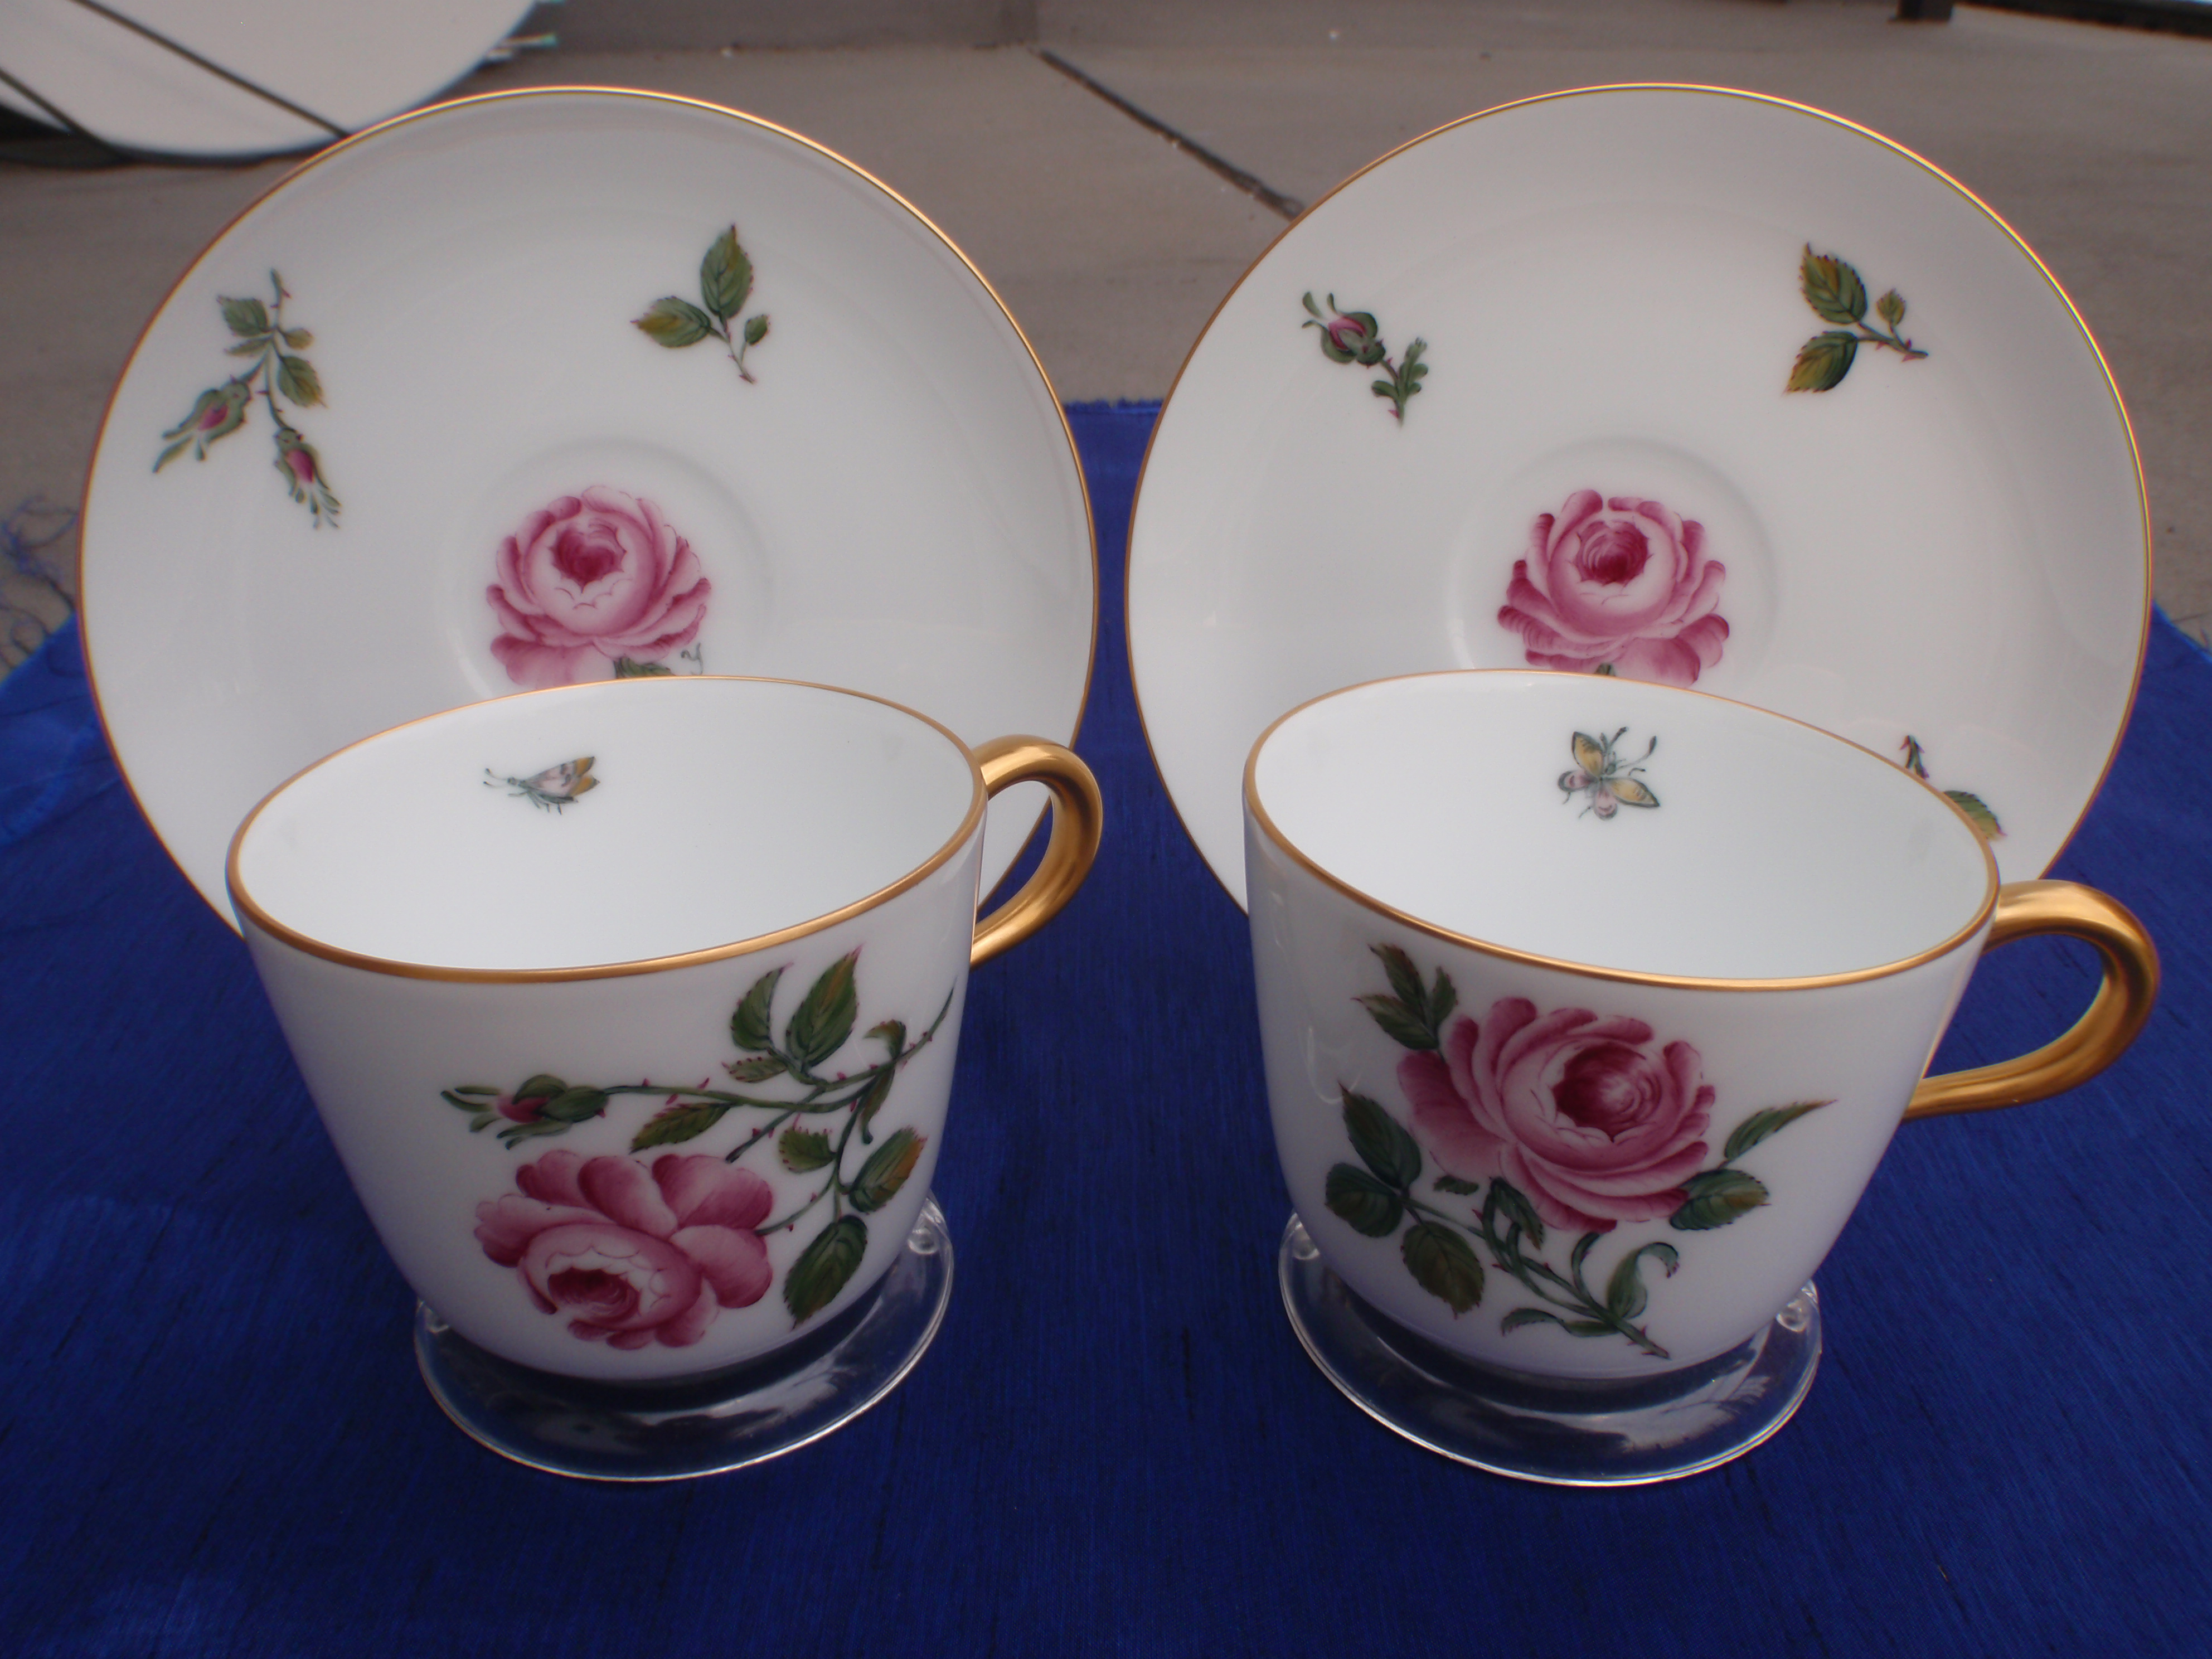 A European Style Rose Painting on Okura Japanese Tableware : european tableware - pezcame.com